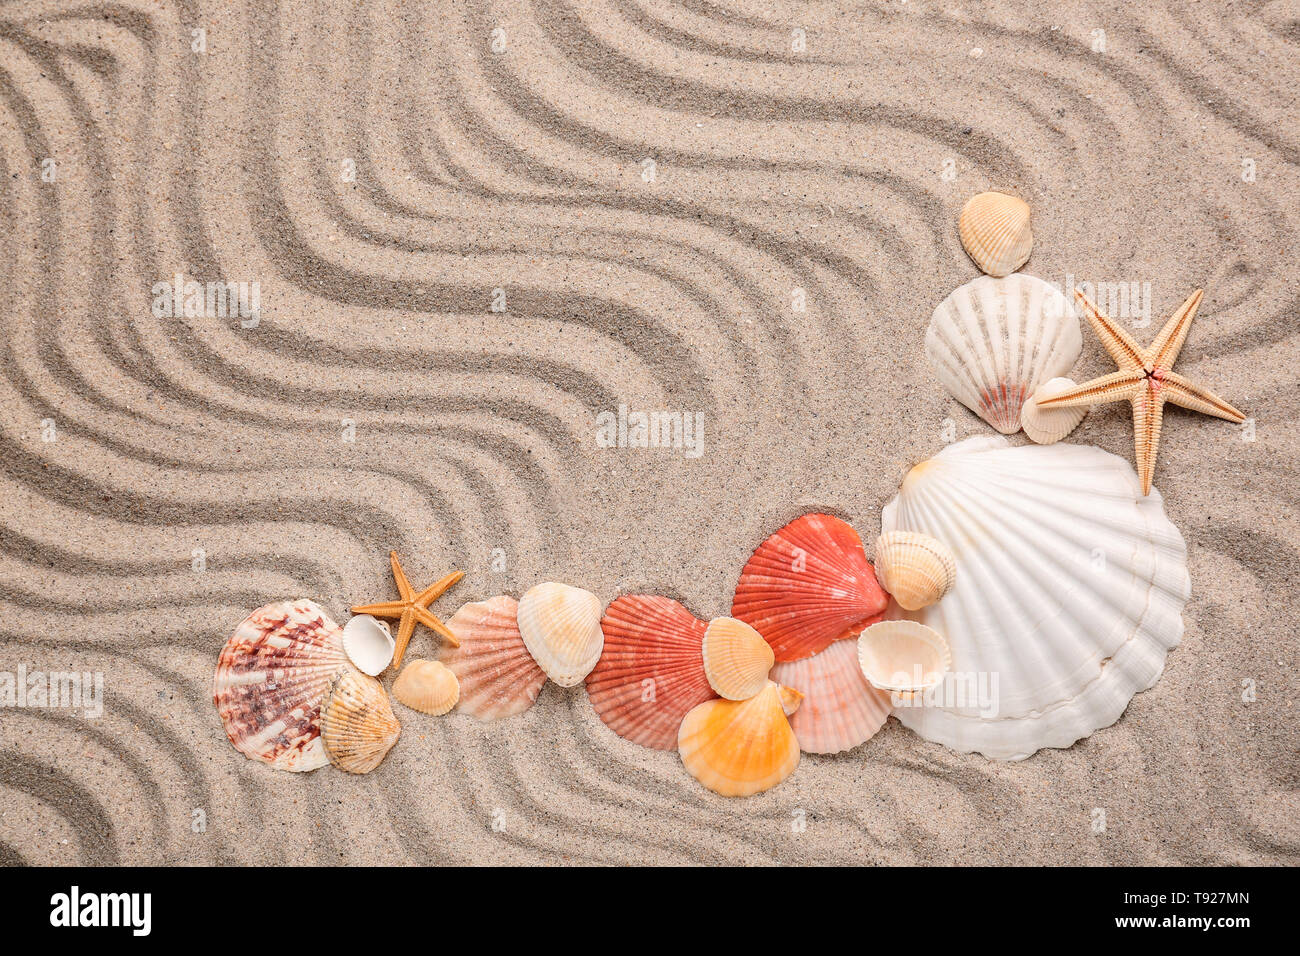 Composition with different sea shells and starfishes on sand - Stock Image